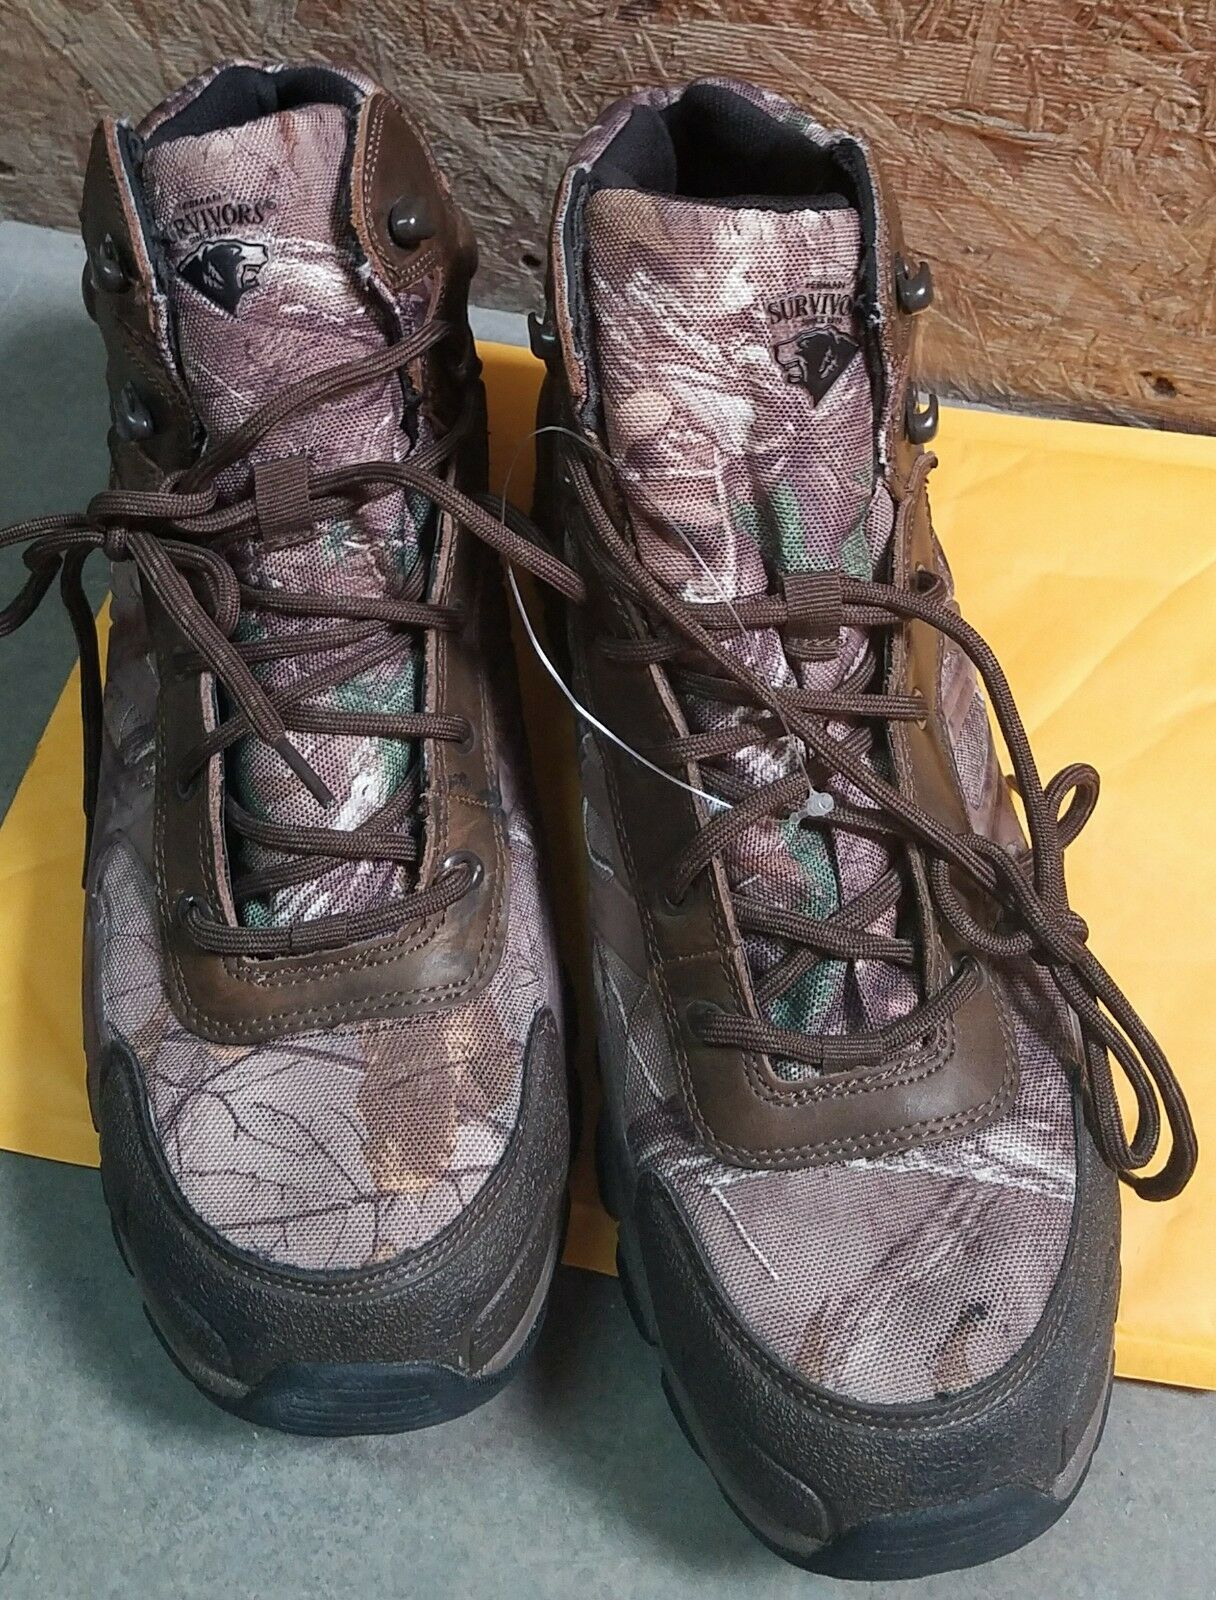 Men's HERMAN SURVIVORS WATERPROOF INSULATED 6  HUNTING BOOTS Size 13